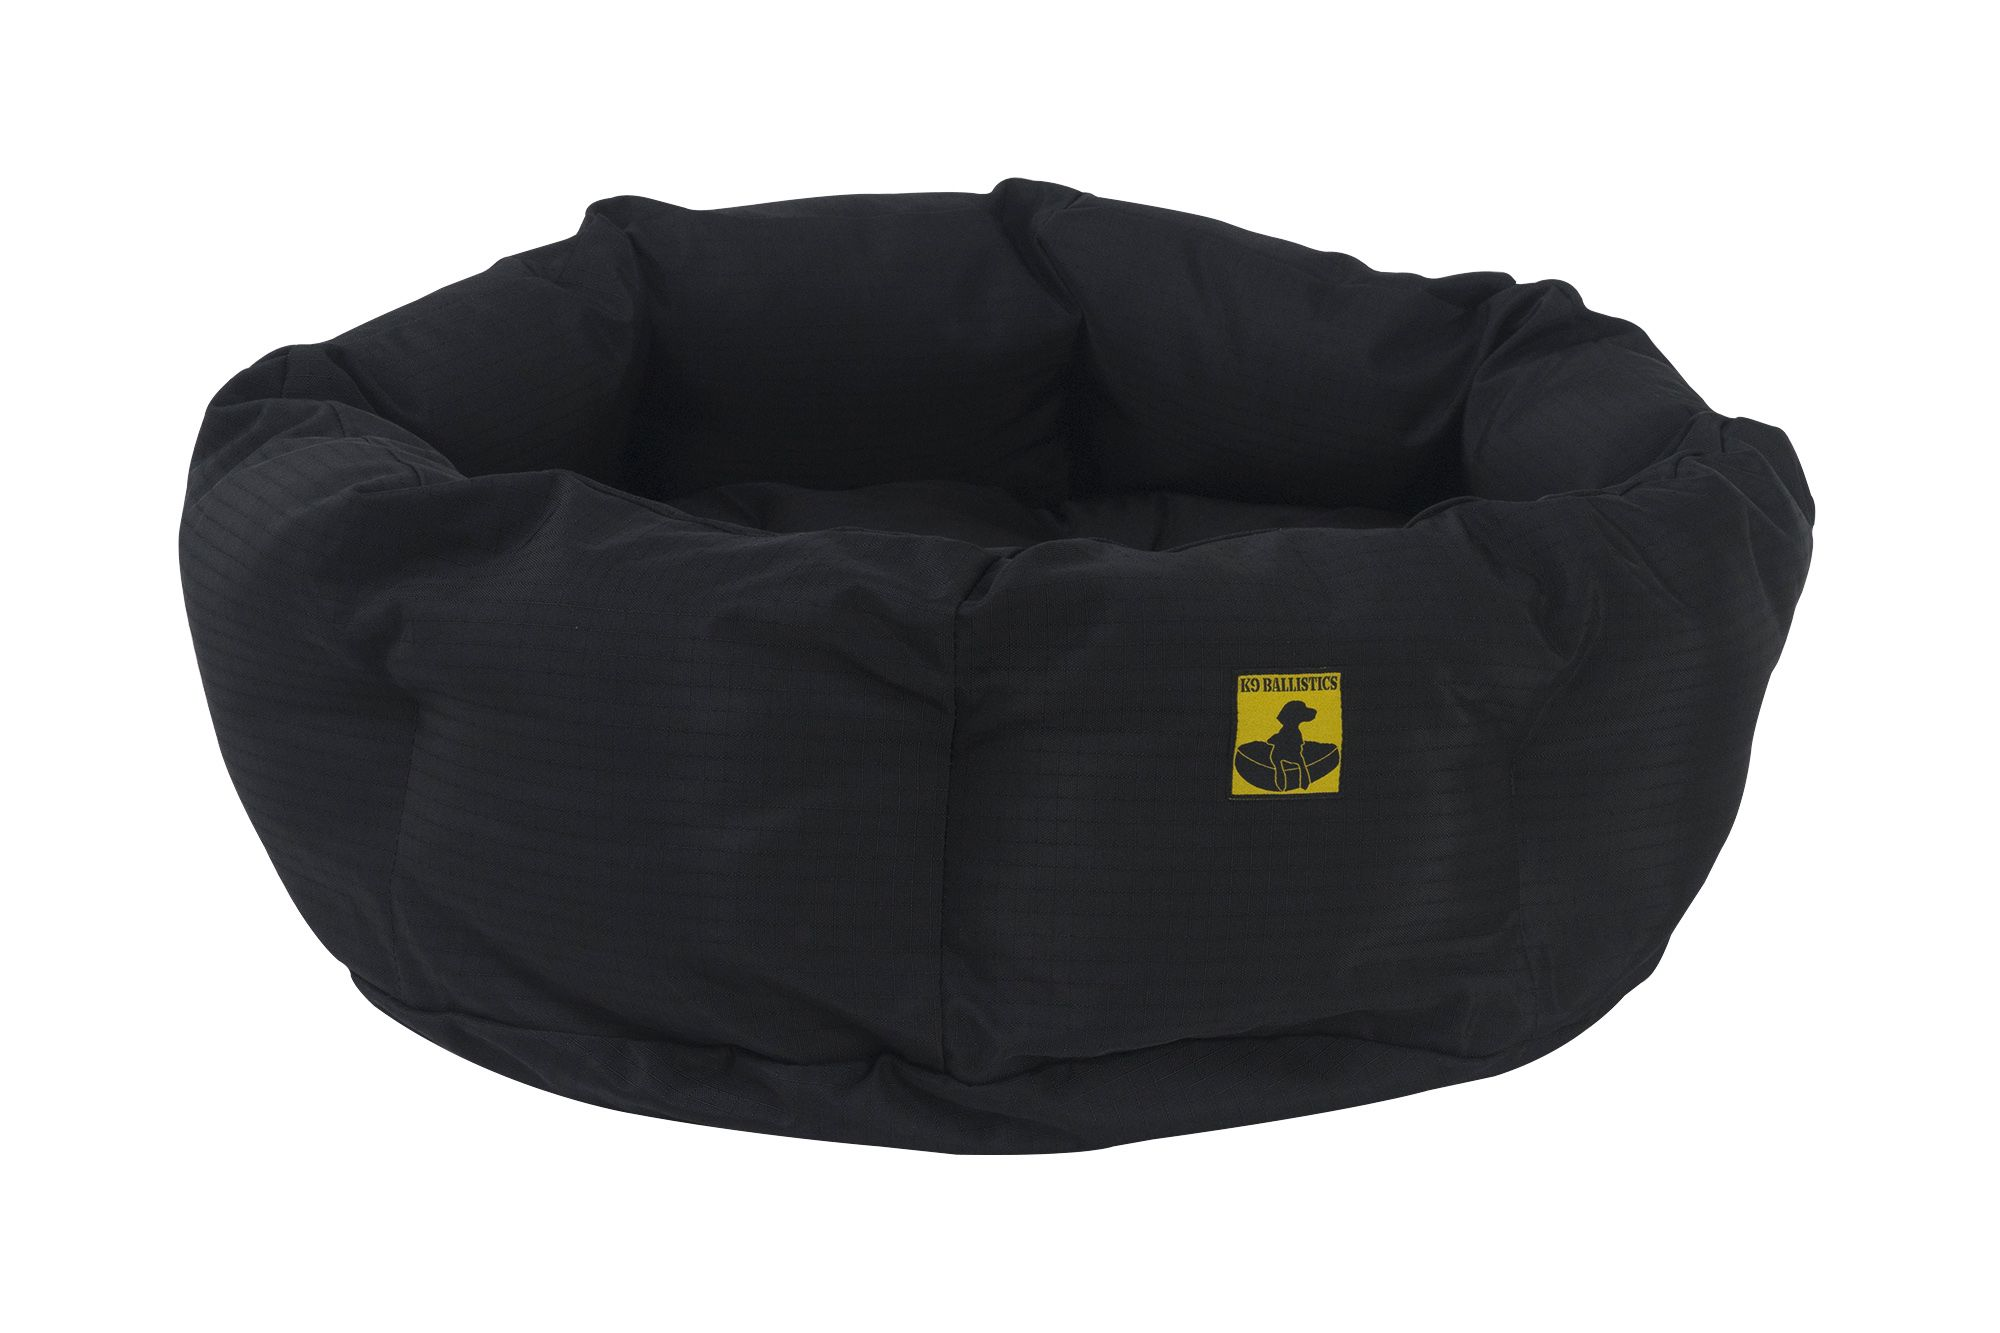 Tough Deep Den Dog Bed™ Dog bed, Black bedding, Round